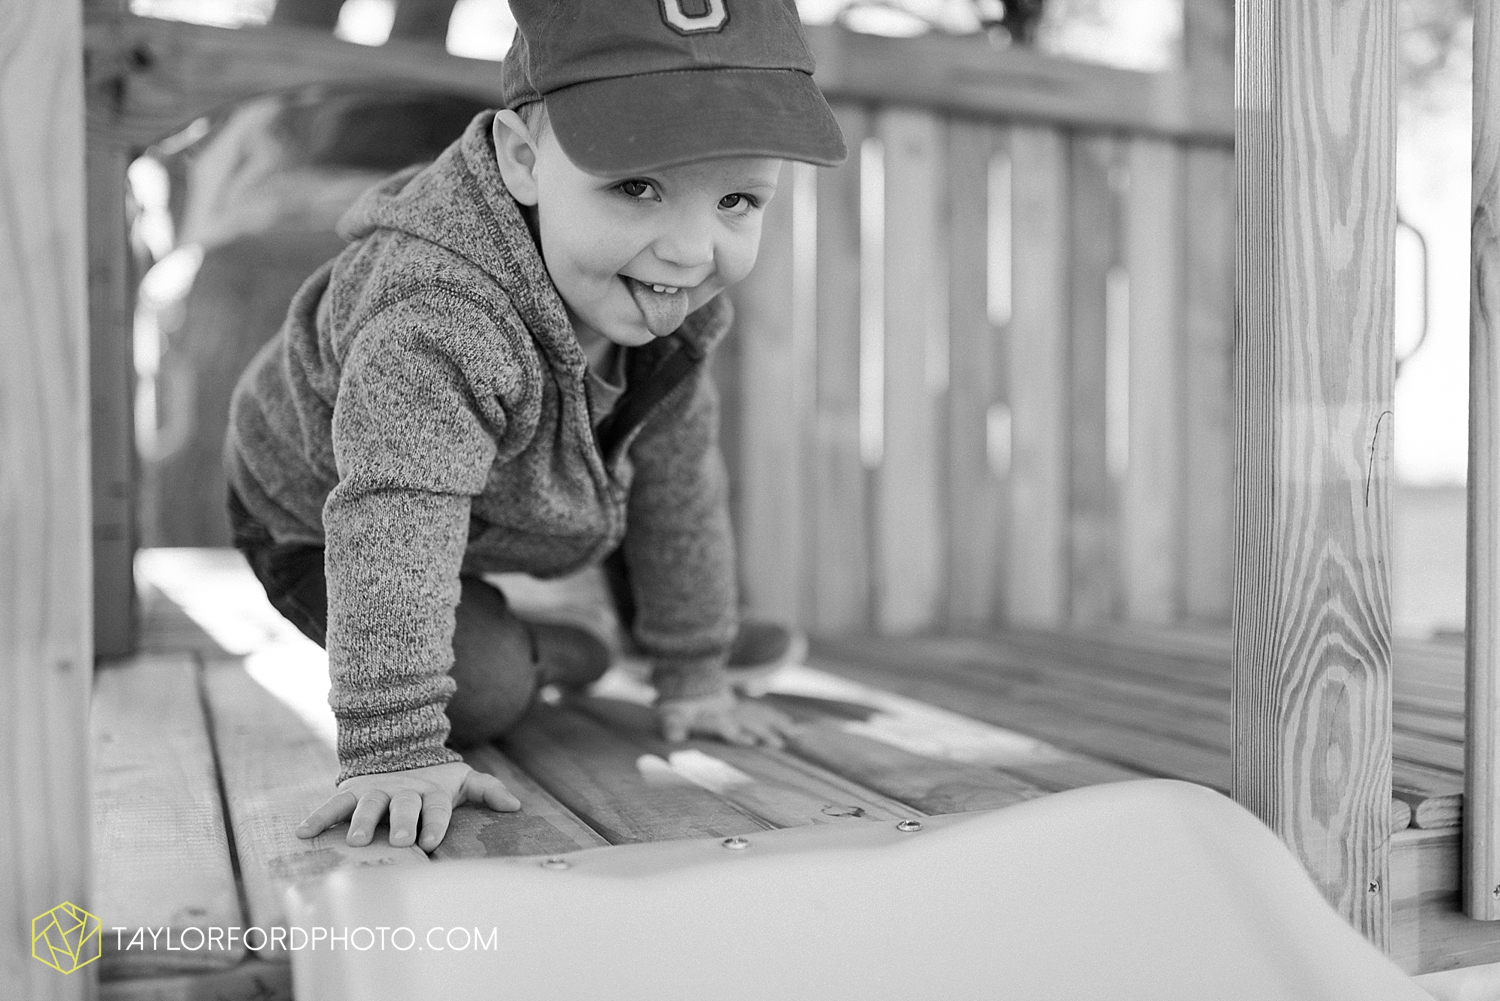 nashville_tennessee_taylor_ford_photography_lifestyle_newborn_family_photographer_4701.jpg